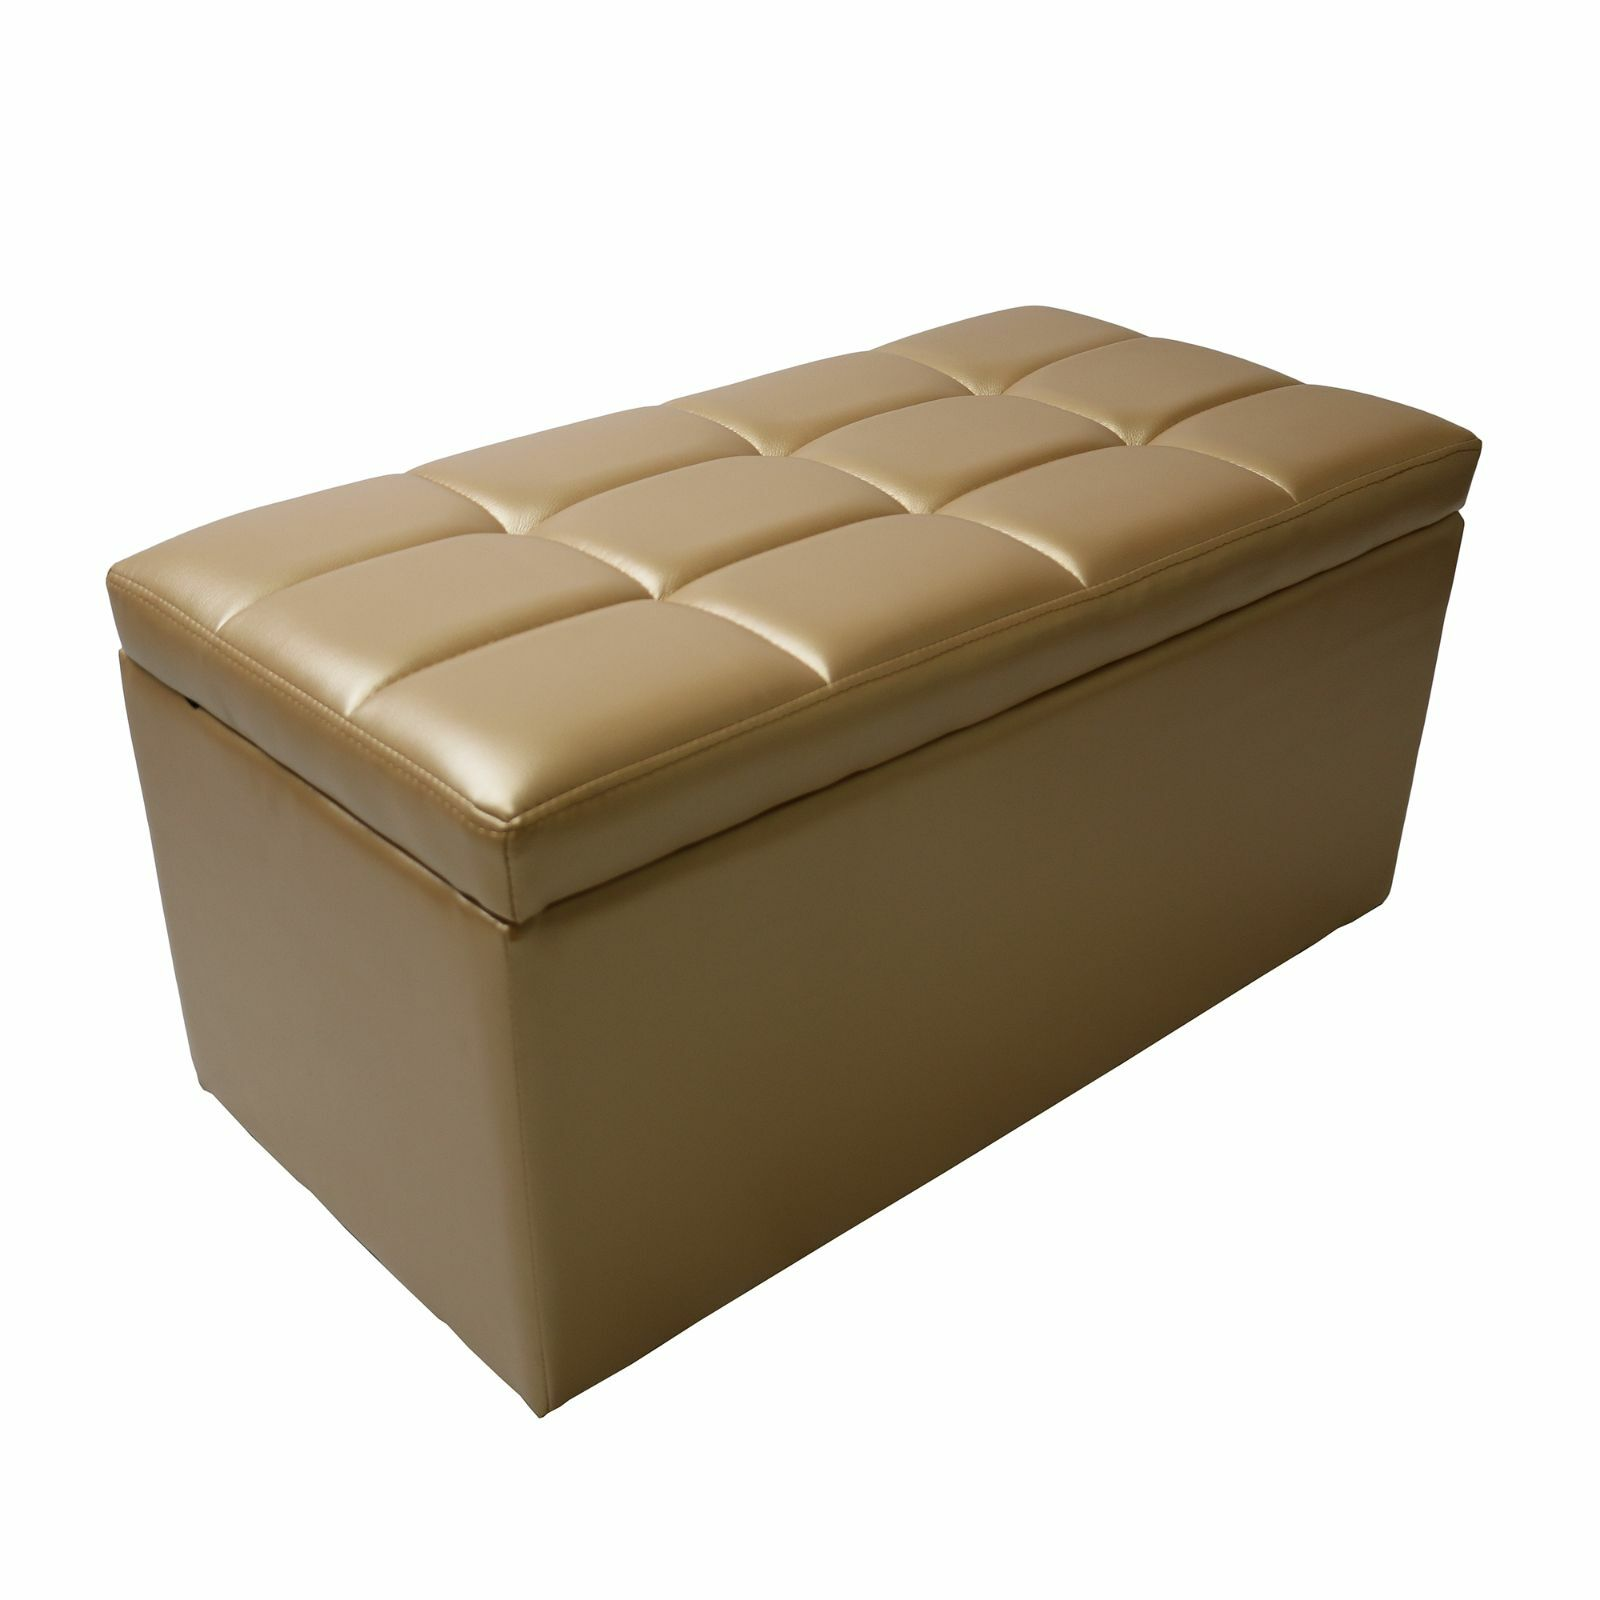 Golden Faux Leather Storage Foot Rest Lift Top Bench